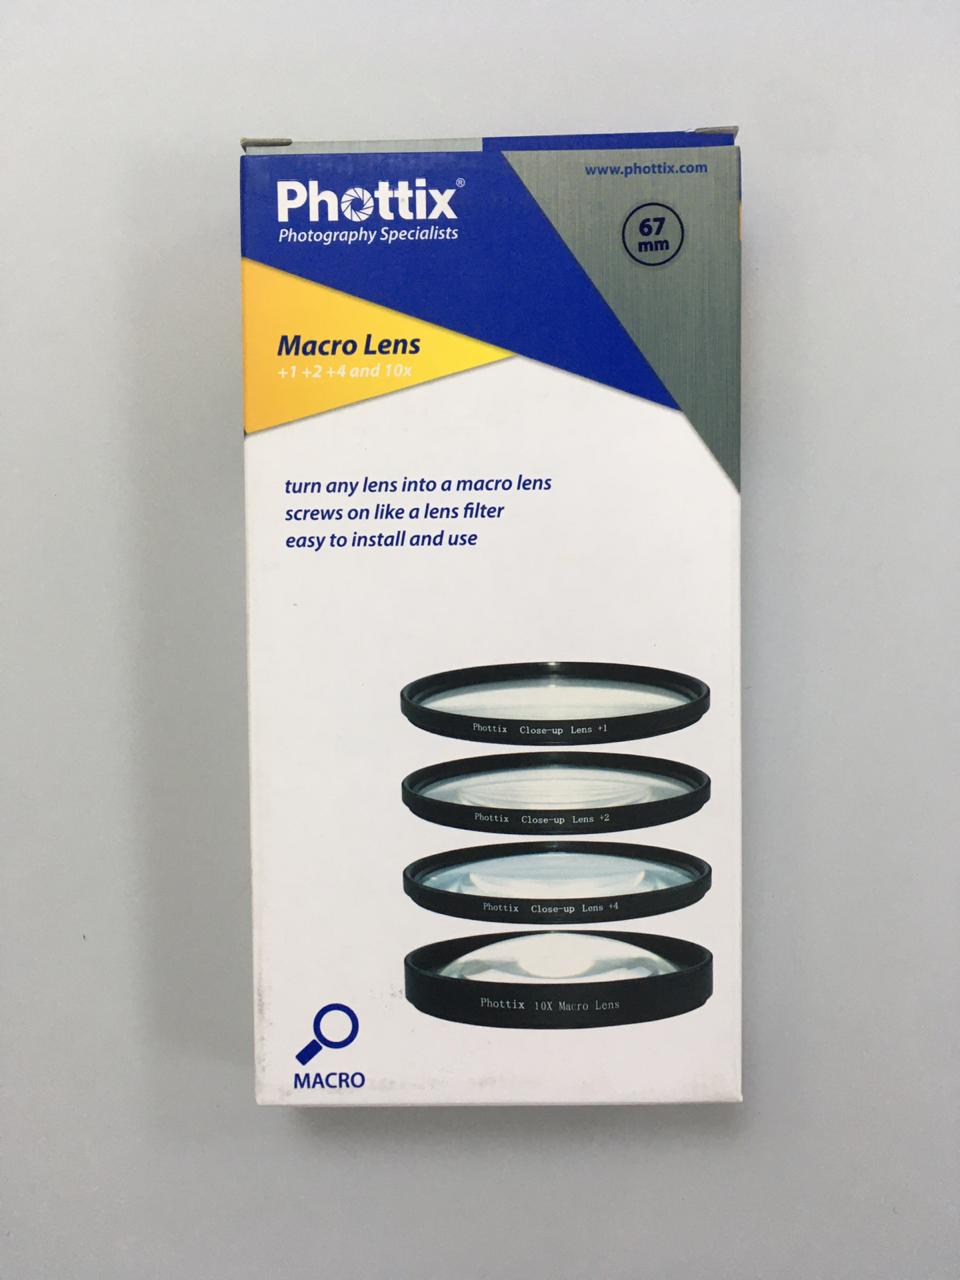 Phottix +1,+2,+4,10x Macro Lens (Close-up Lens) 67mm